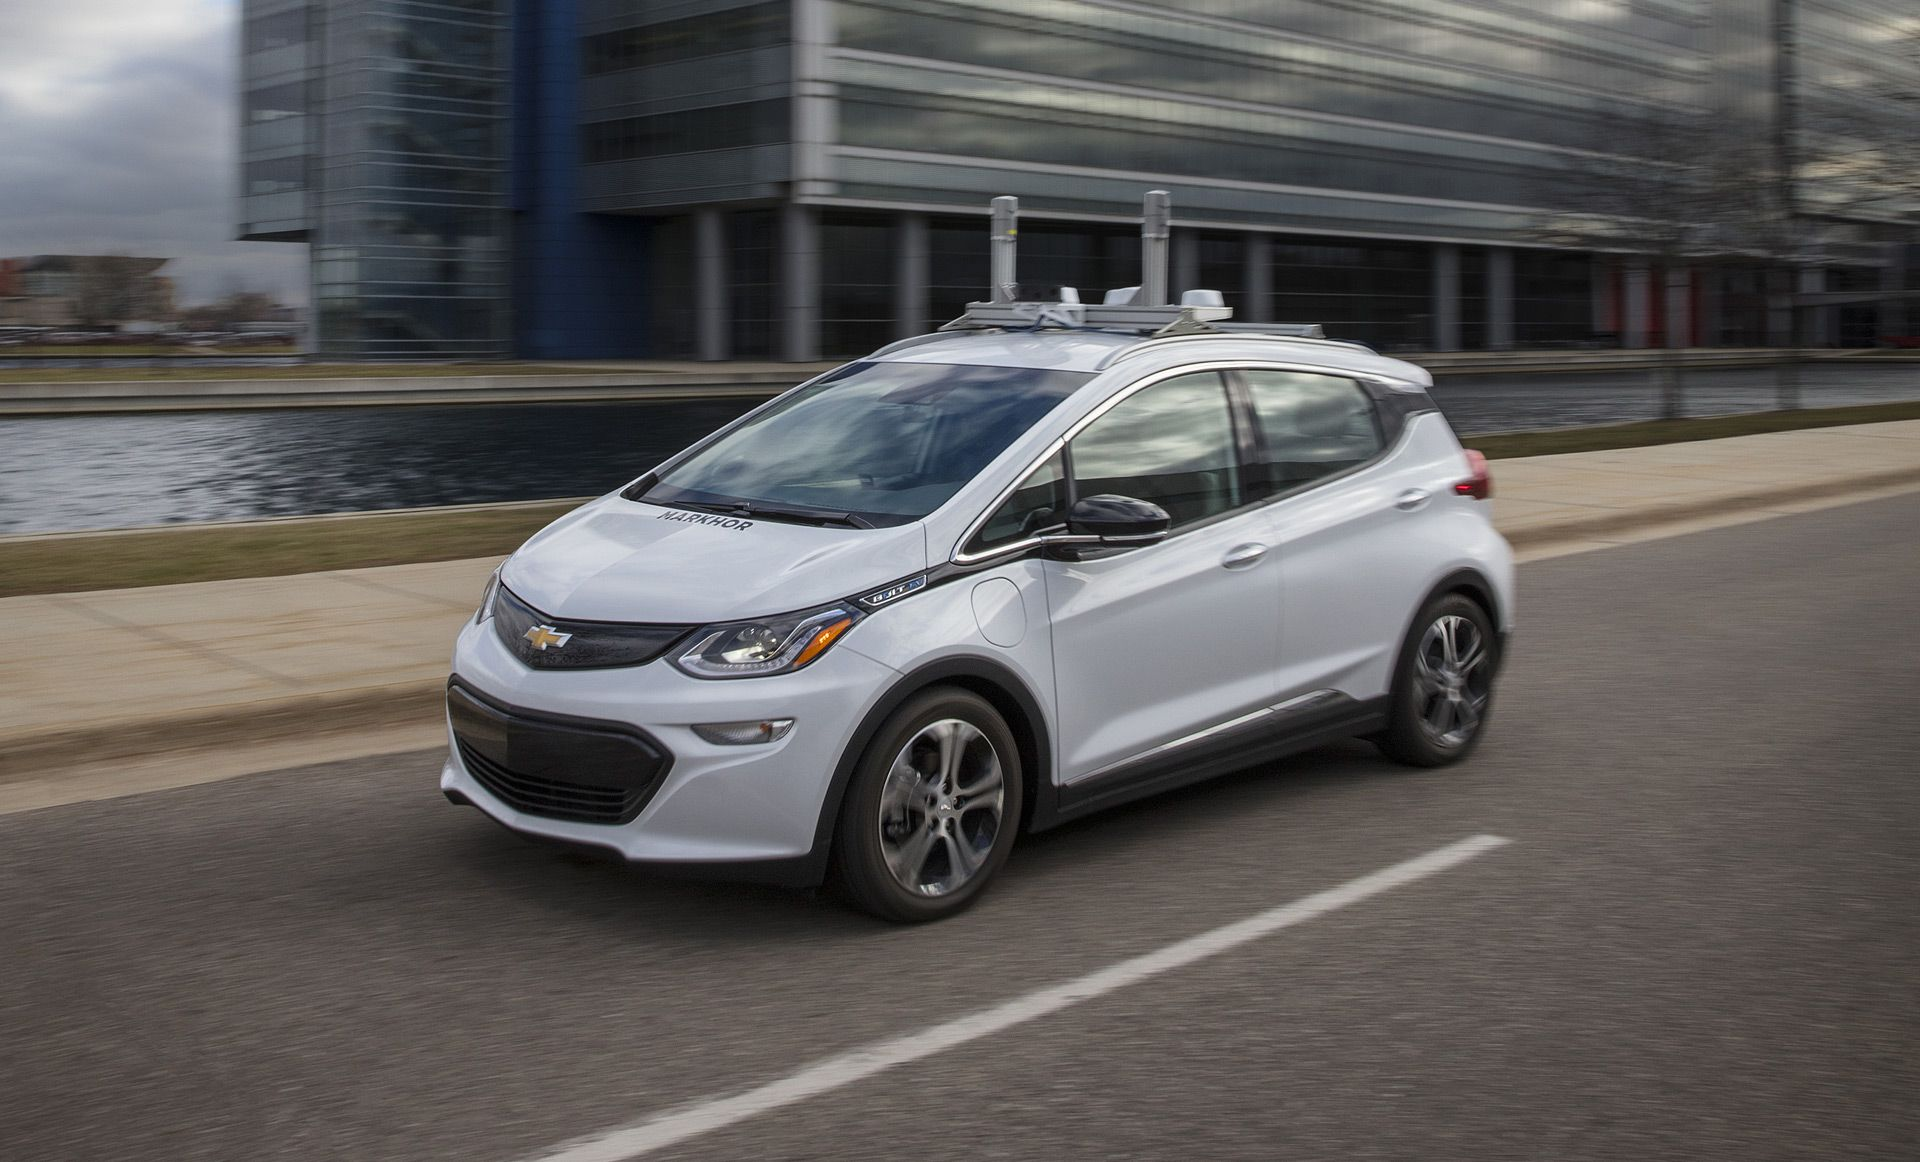 Modern Electric Cars Have Been On U S Roads For Seven Years Or So And Owners Love Their Smooth Quiet Close To Noise Free Operation